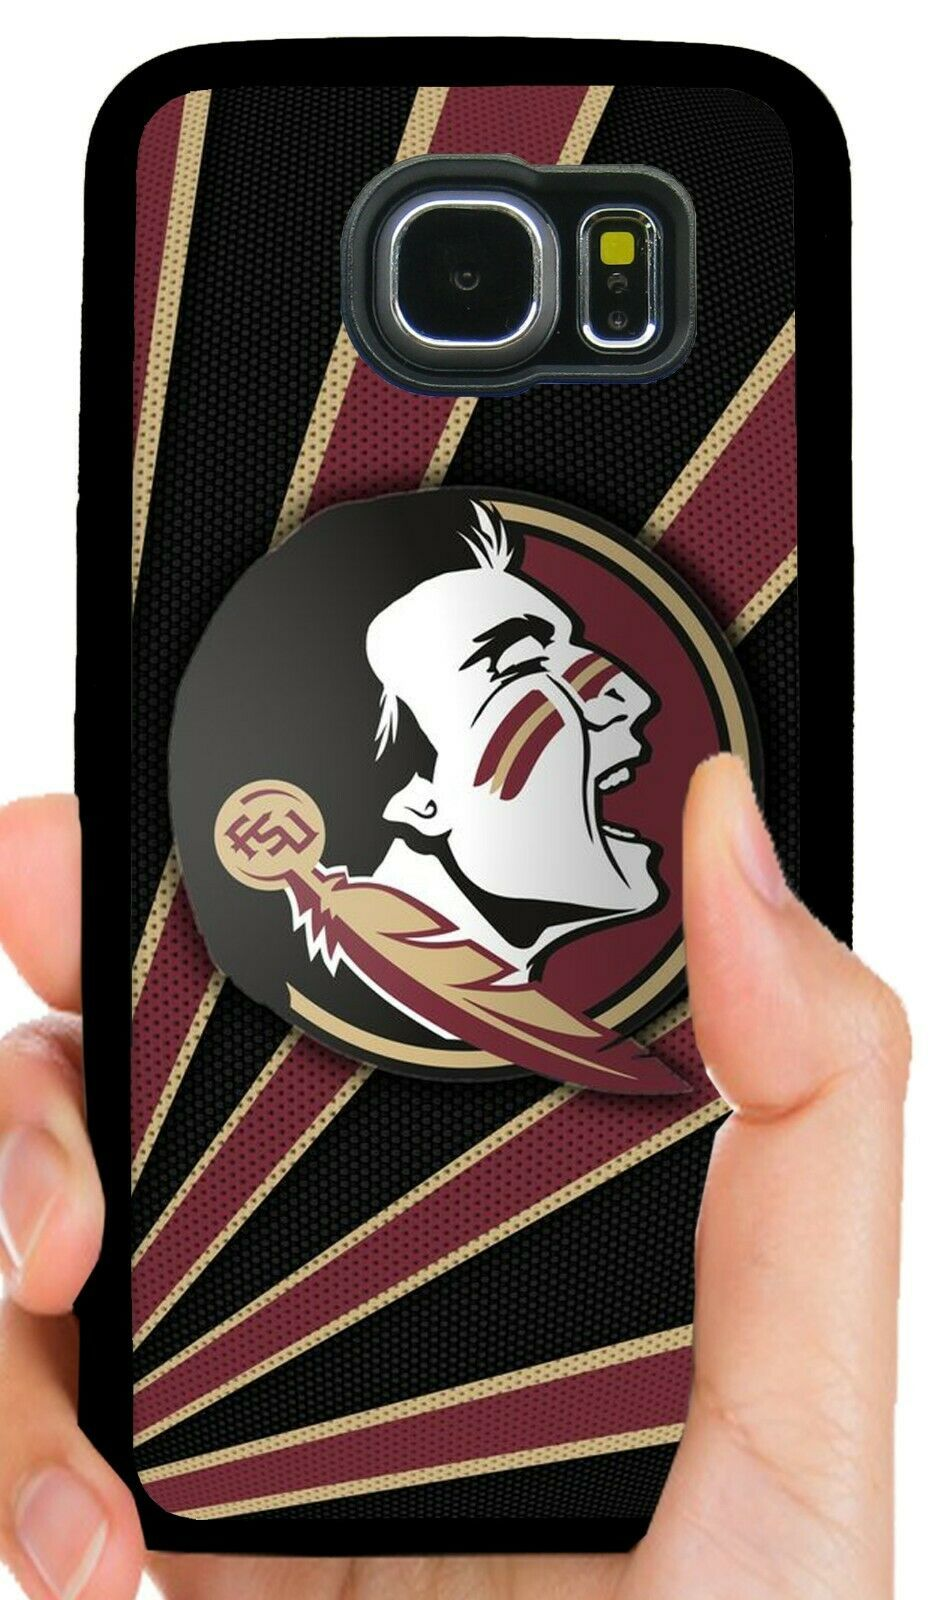 FLORIDA STATE FSU PHONE CASE FOR SAMSUNG NOTE & GALAXY S6 S7 EDGE S8 S9 S10 PLUS